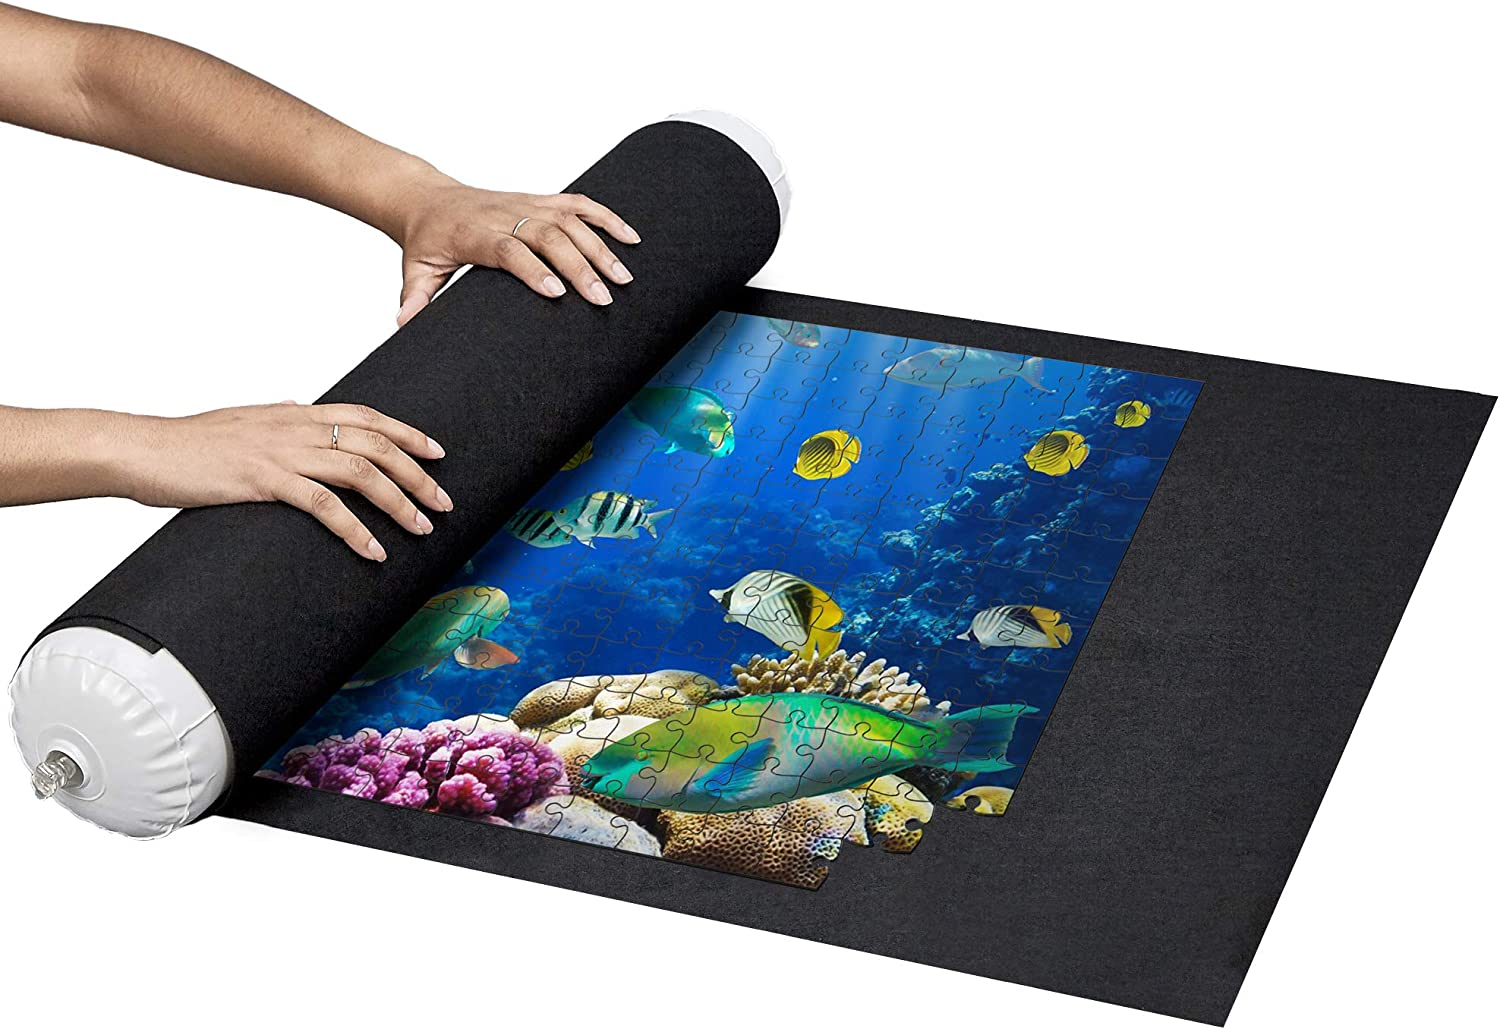 Store and Transport Jigsaw Puzzles Up to 1500 Pieces and 3 Elastic Fasteners by Amy and Delle 46 x 26 Felt Mat Nessie/'s Playground Puzzle Roll Up Mat Inflatable Tube